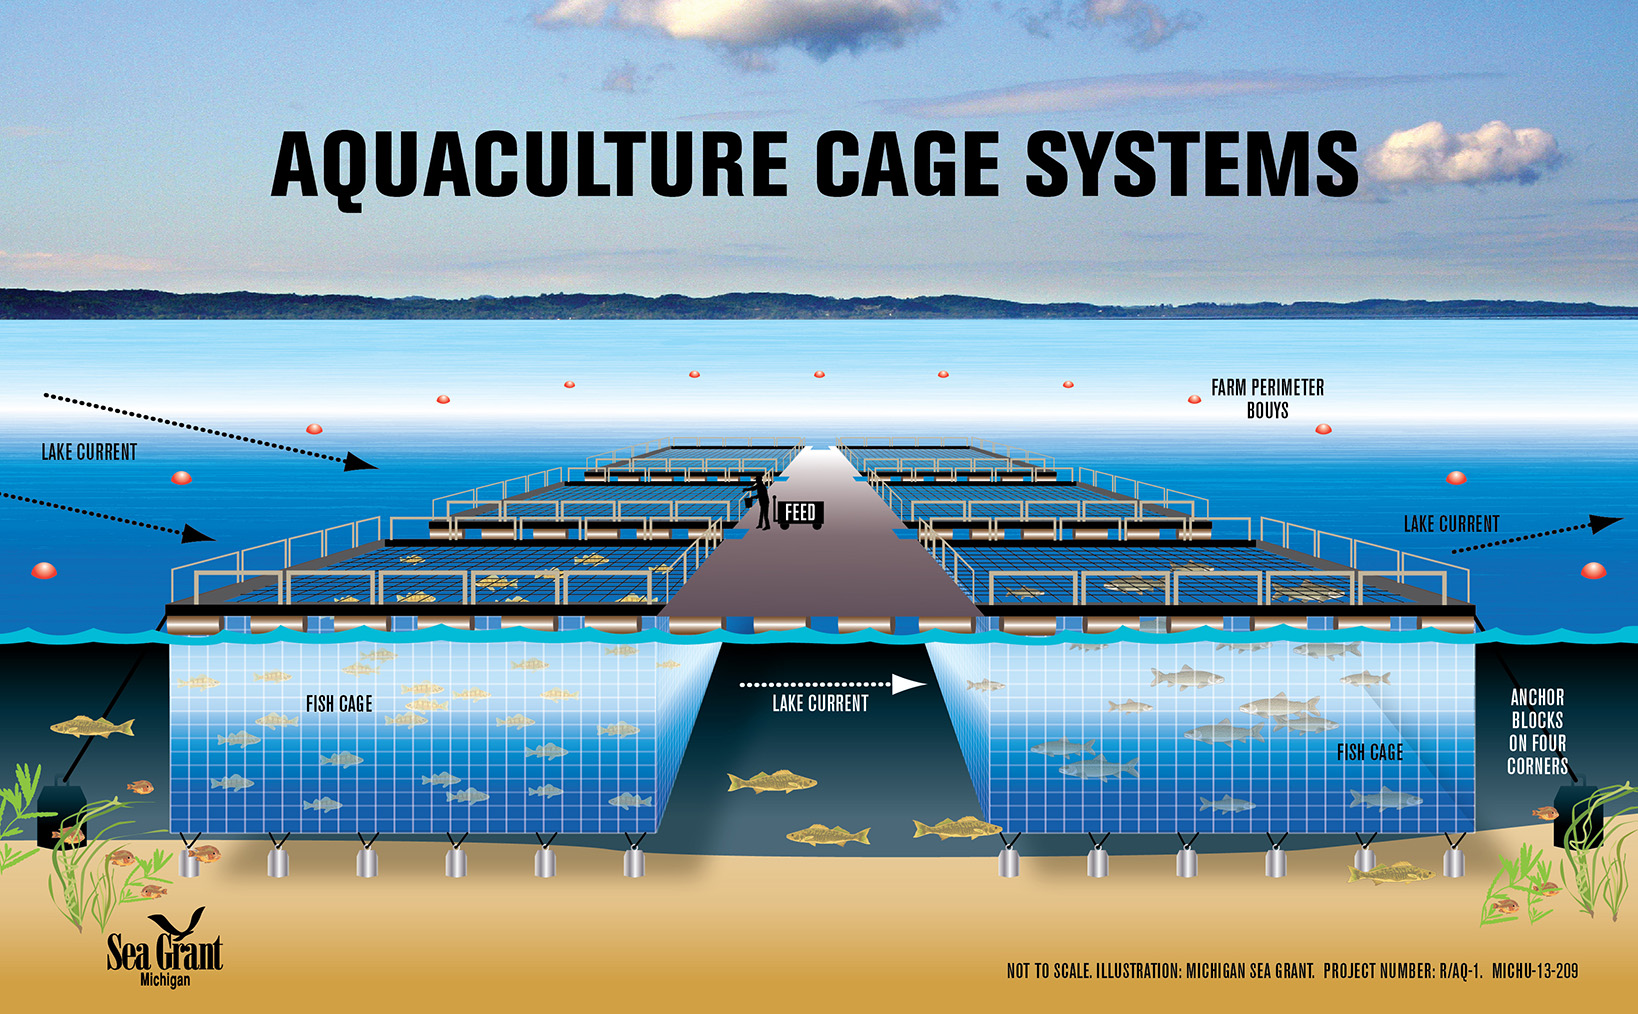 Officials examine fish farming in the Great Lakes | The